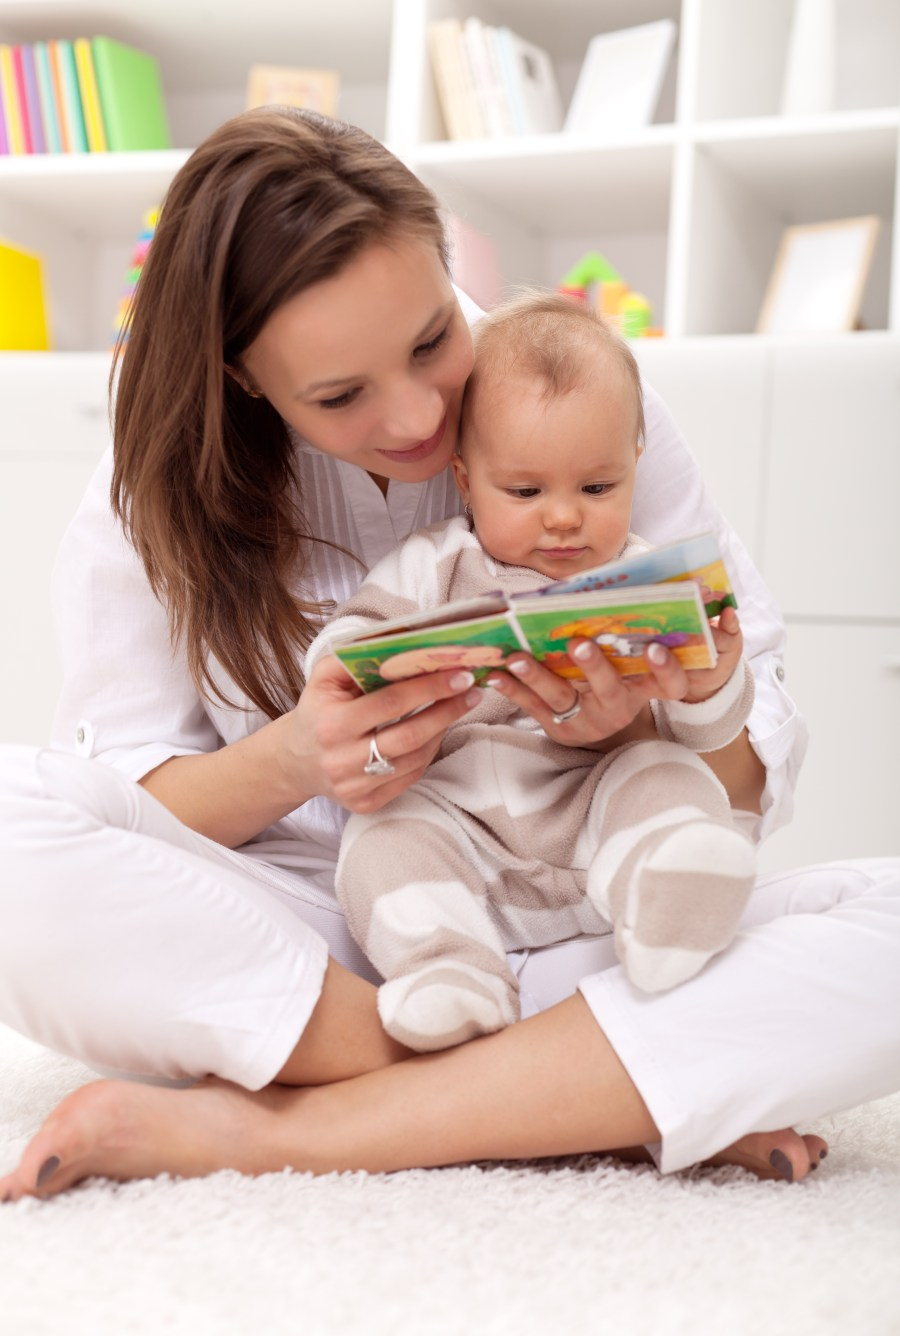 Mum Enjoys Story time As Much As The Baby